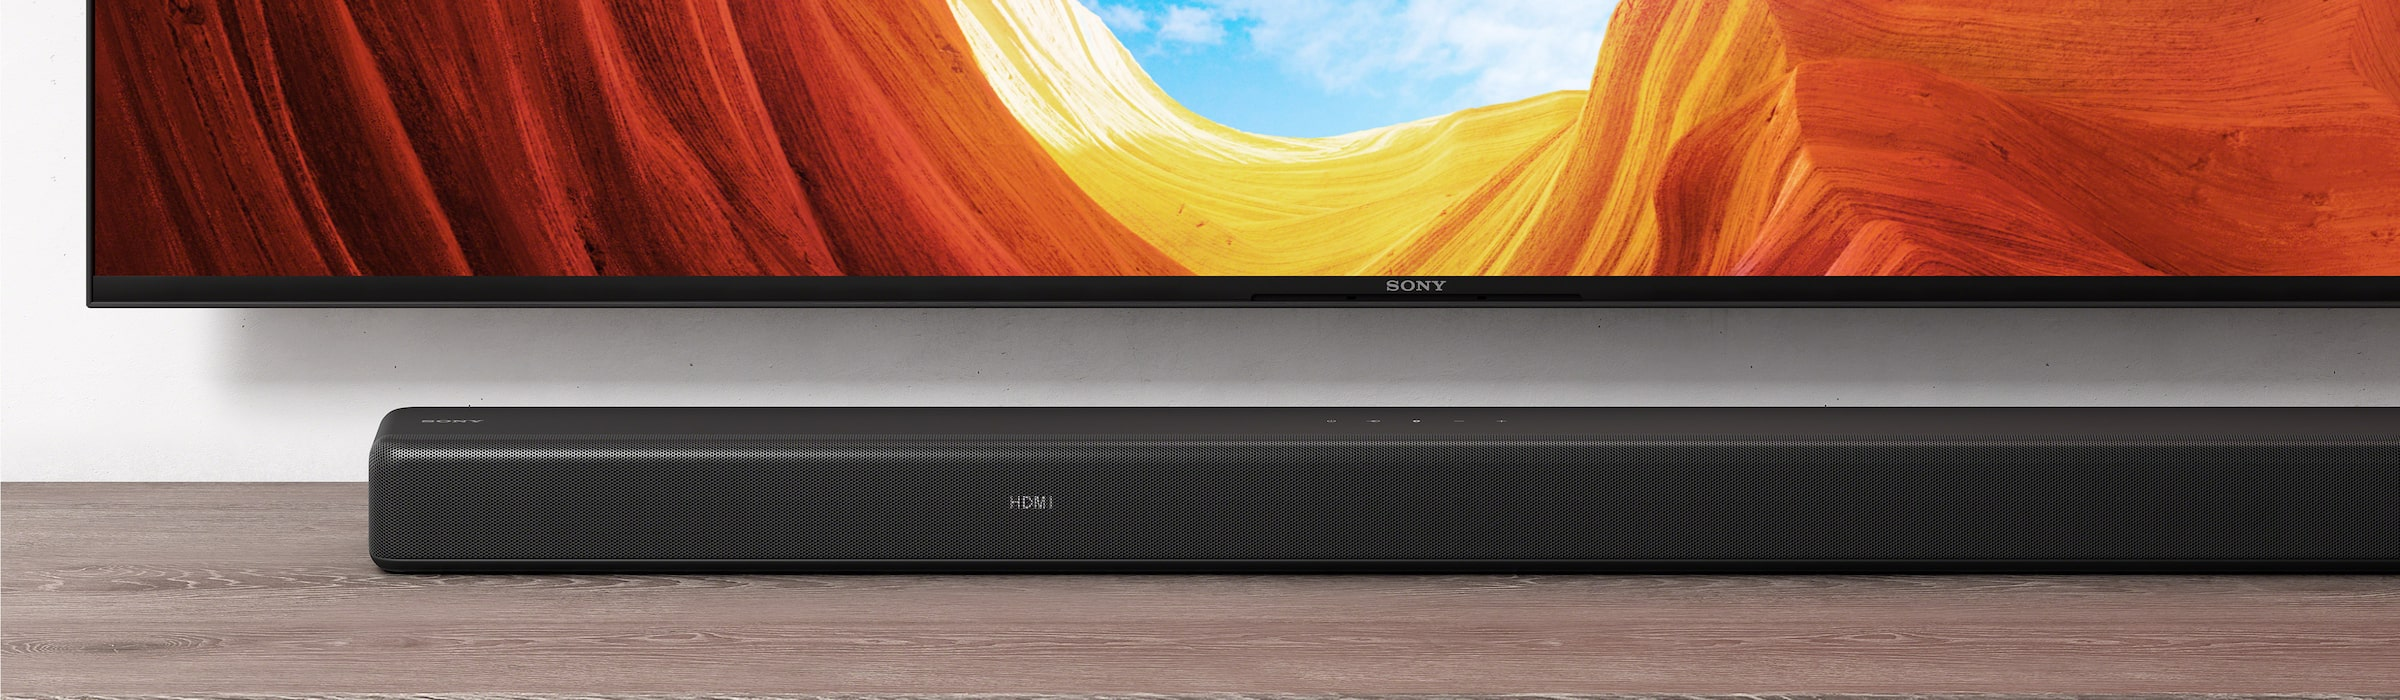 HT-G700 Soundbar met Sony Bravia-tv